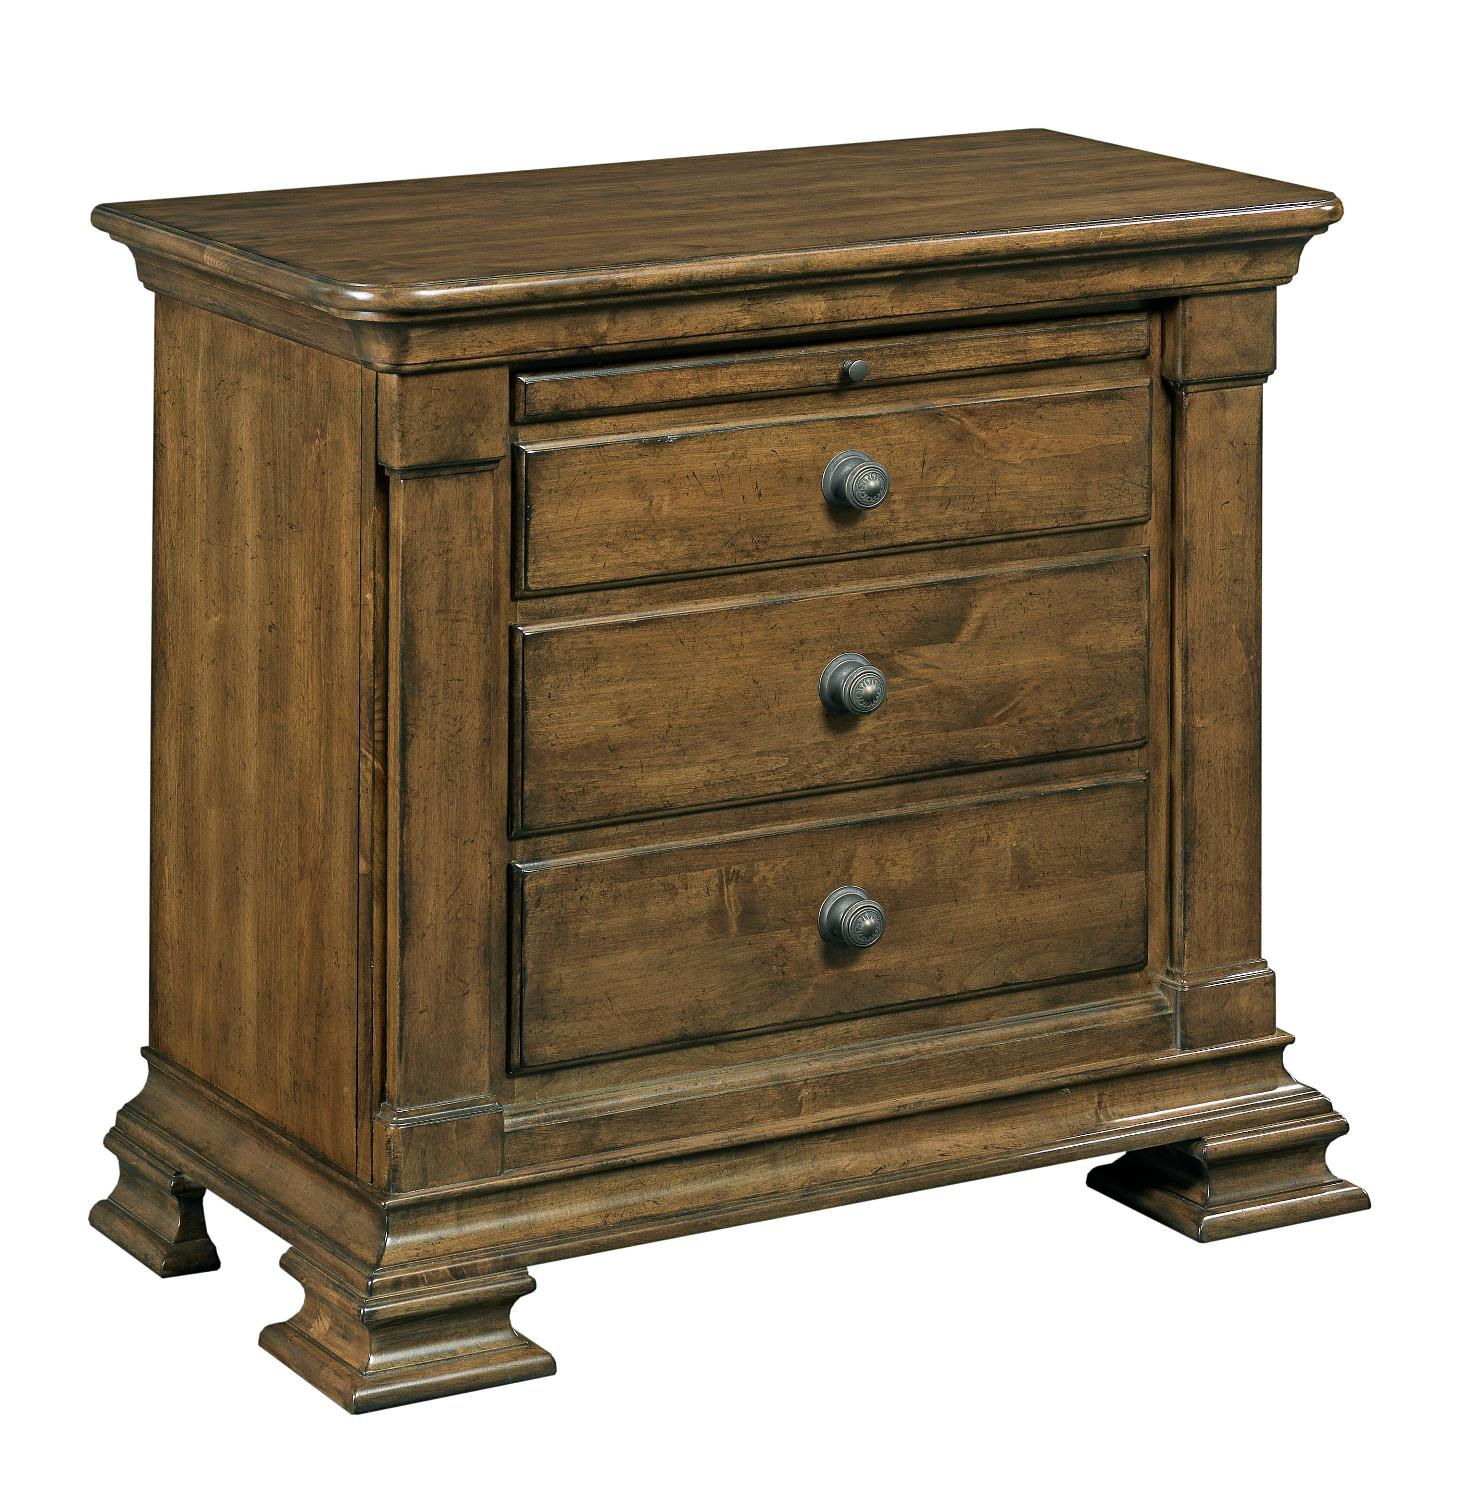 Kincaid Furniture Portolone Bachelor's Chest - Item Number: 95-142